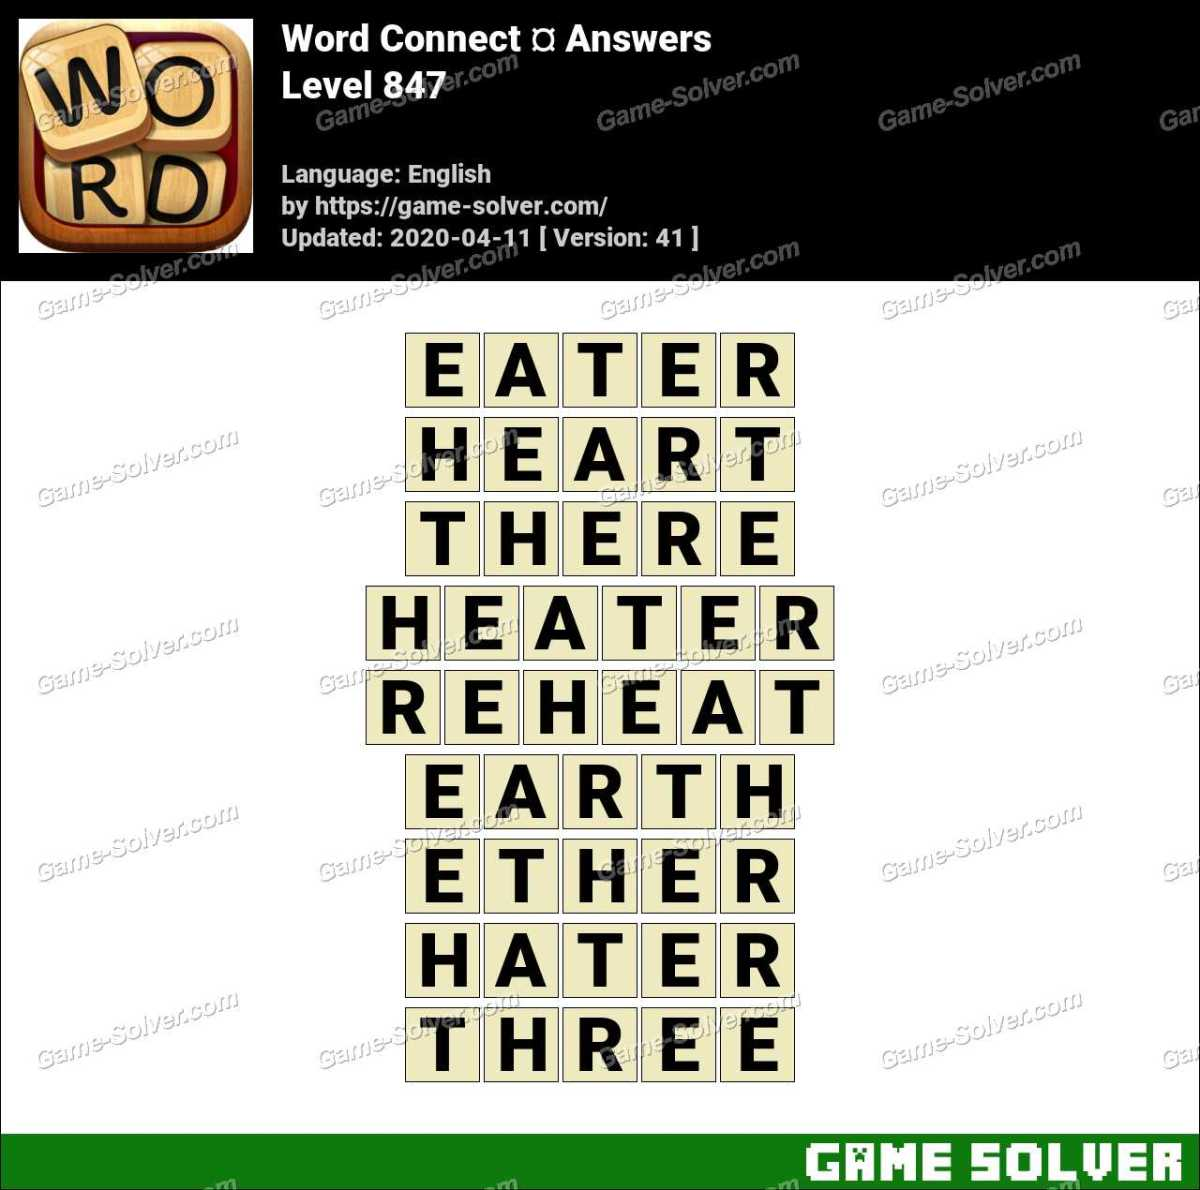 Word Connect Level 847 Answers